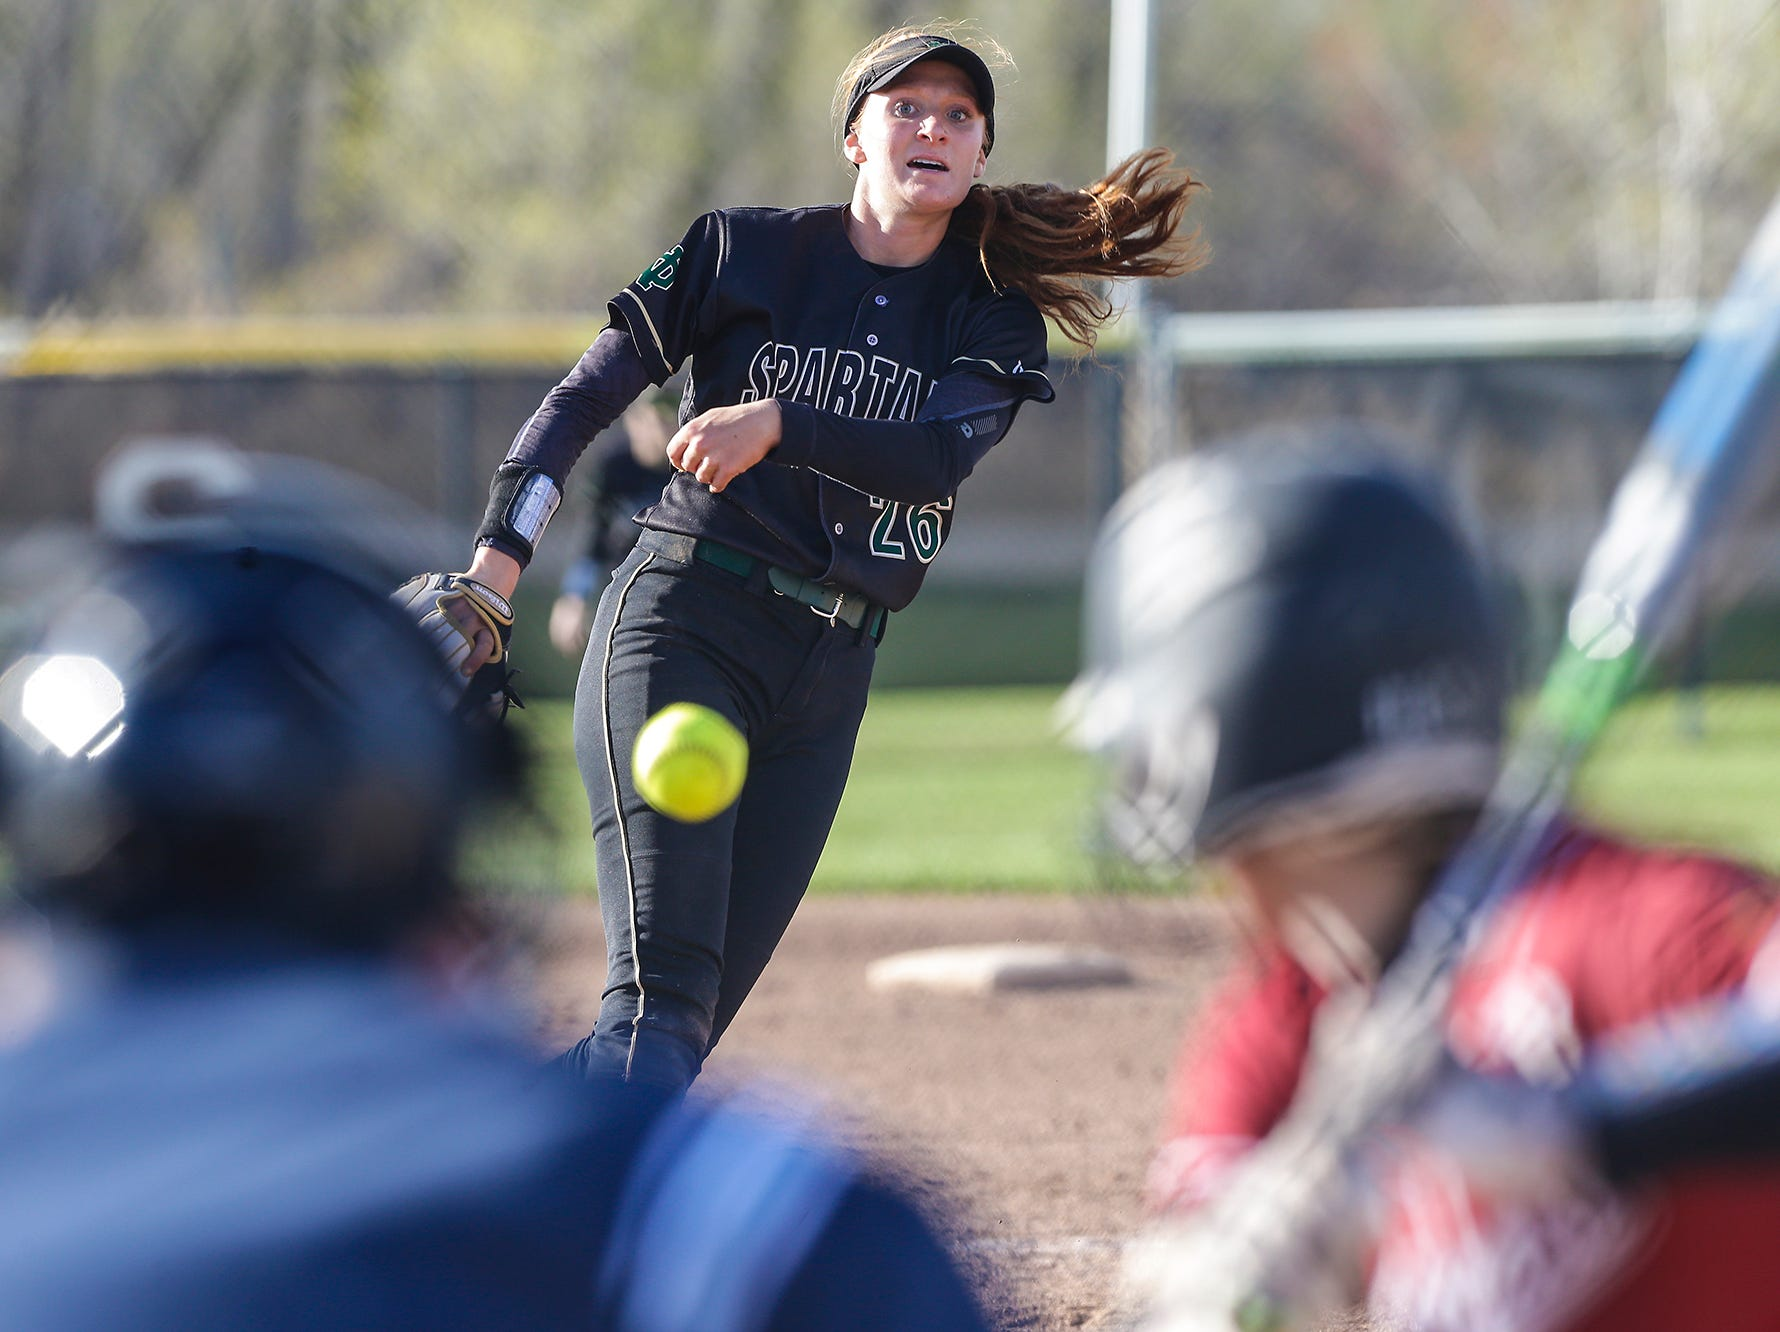 Oshkosh North High School softball's Syd Supple pitches against Fond du Lac High School during their game Friday, April 26, 2019 in Fond du Lac, Wis. Doug Raflik/USA TODAY NETWORK-Wisconsin